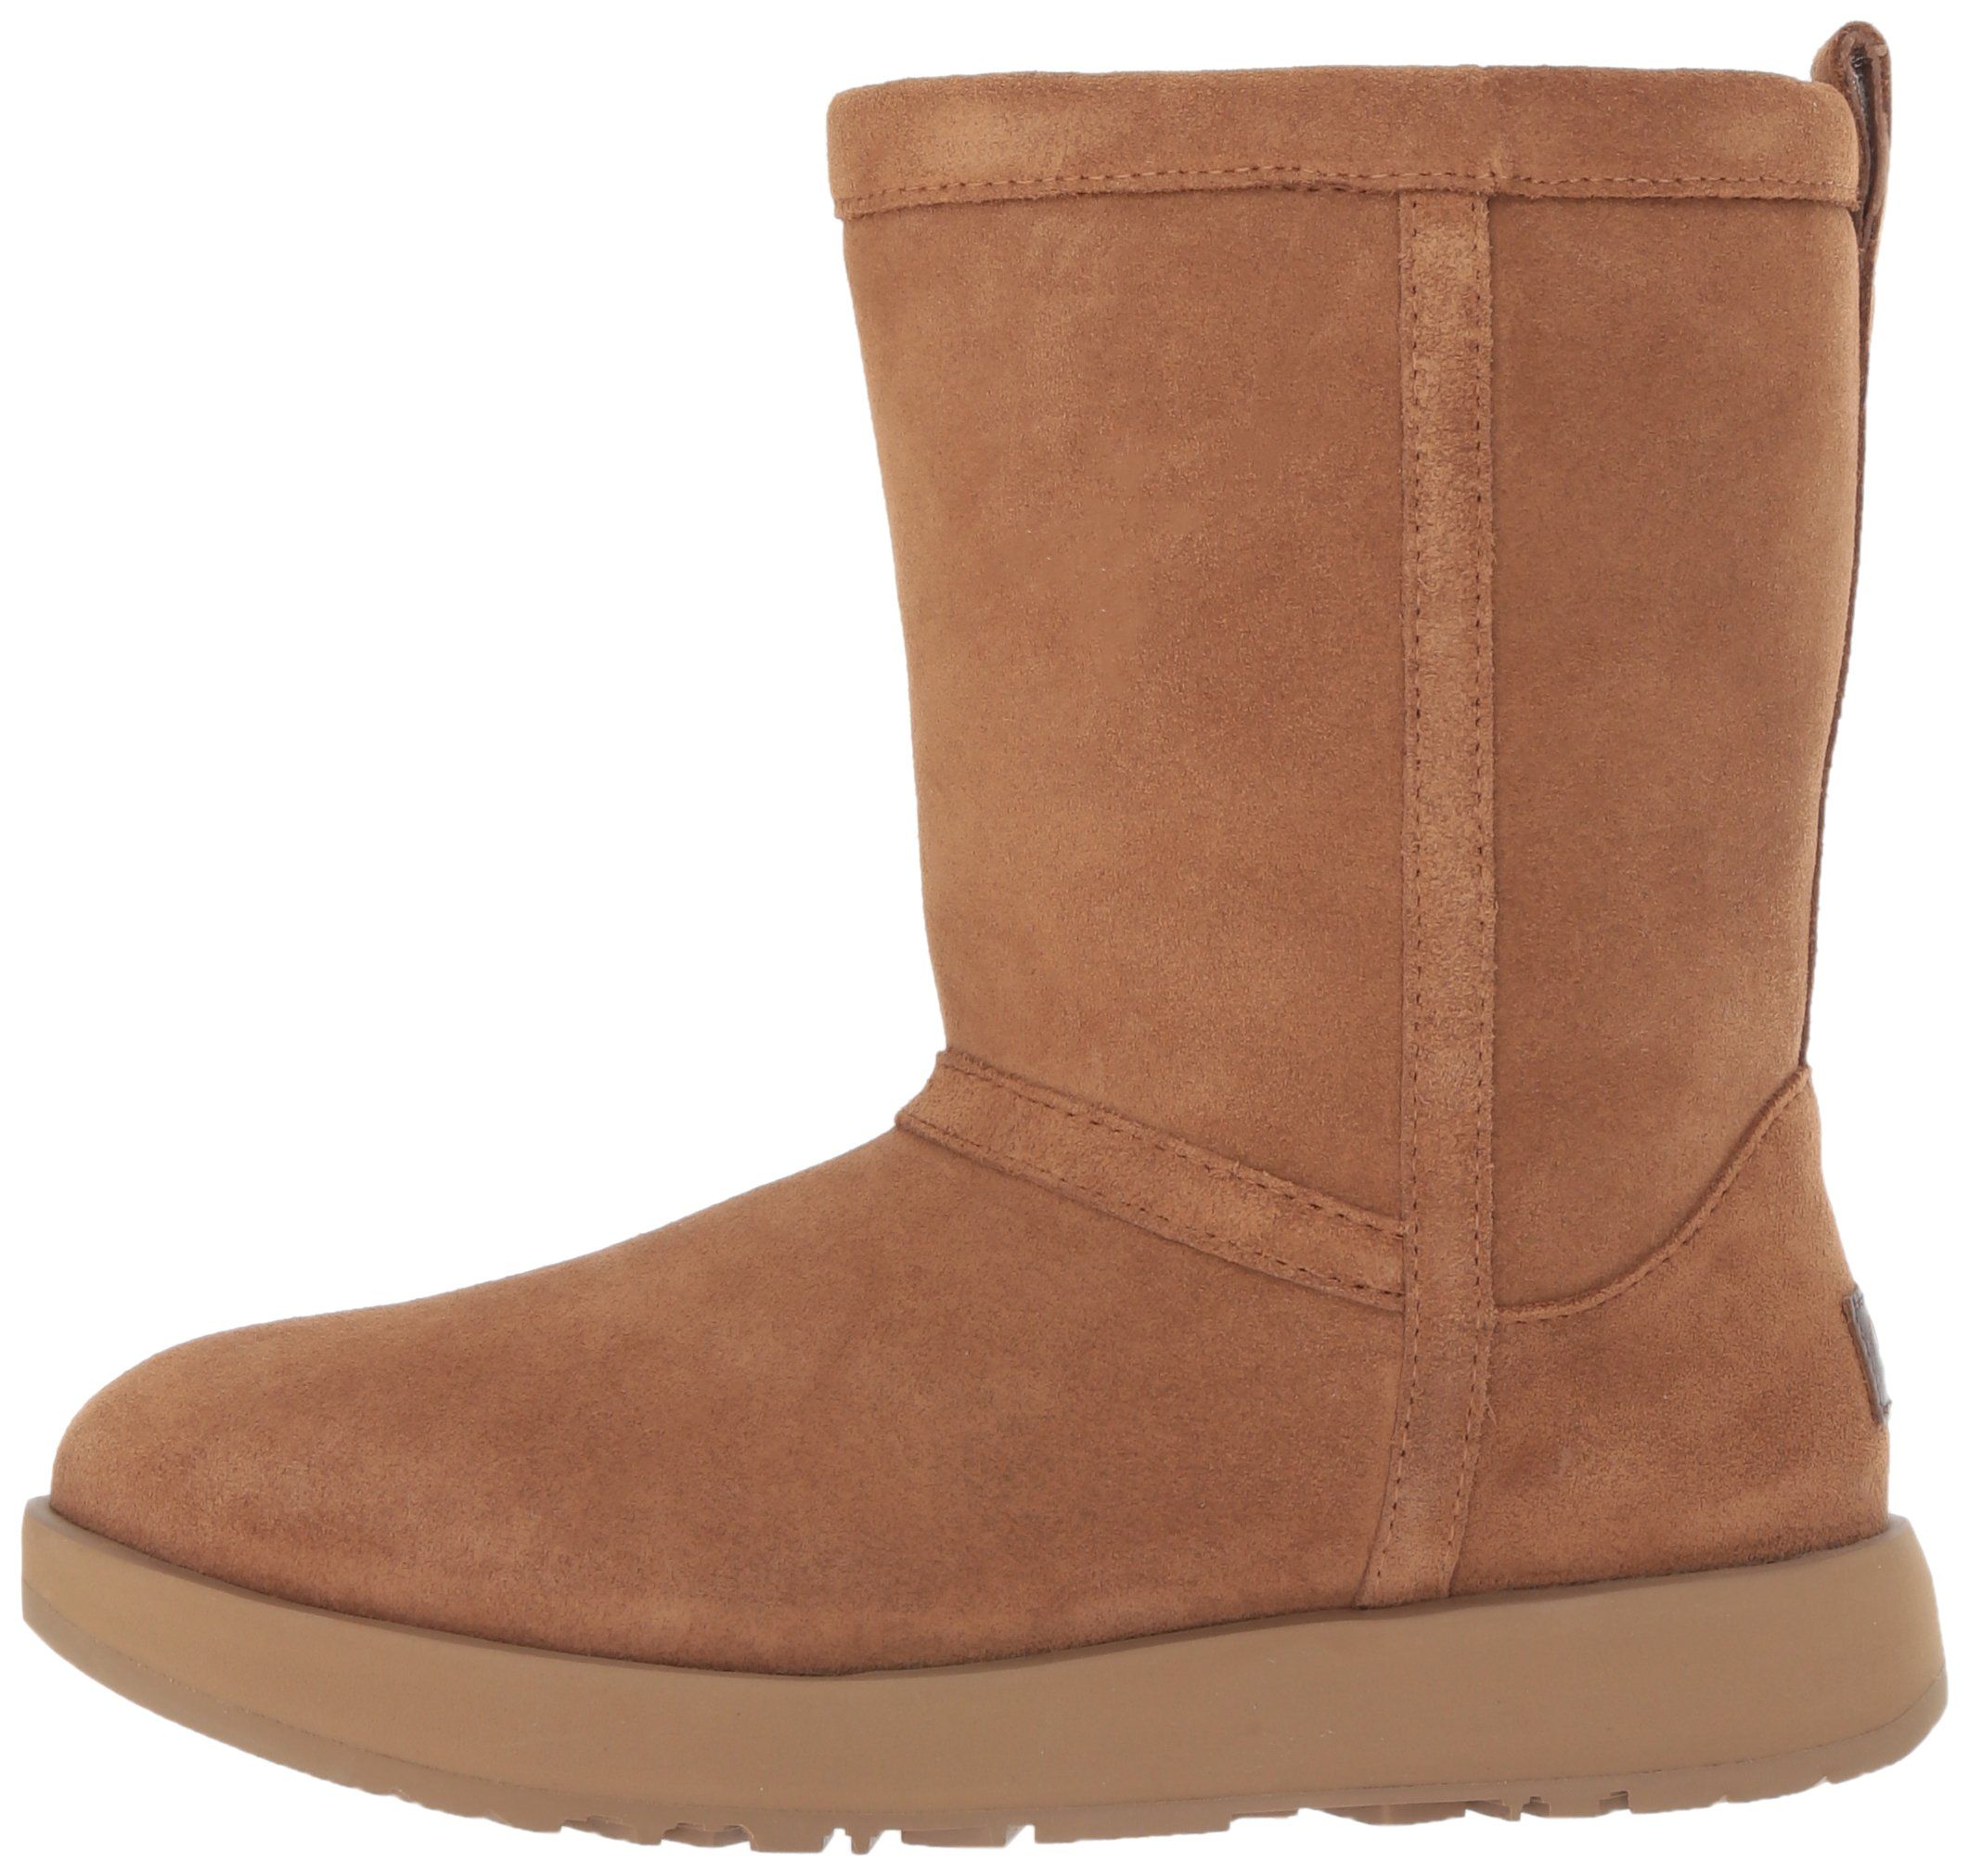 UGG Women's Classic Short Waterproof Snow Boot, Chestnut, 9 M US by UGG (Image #5)